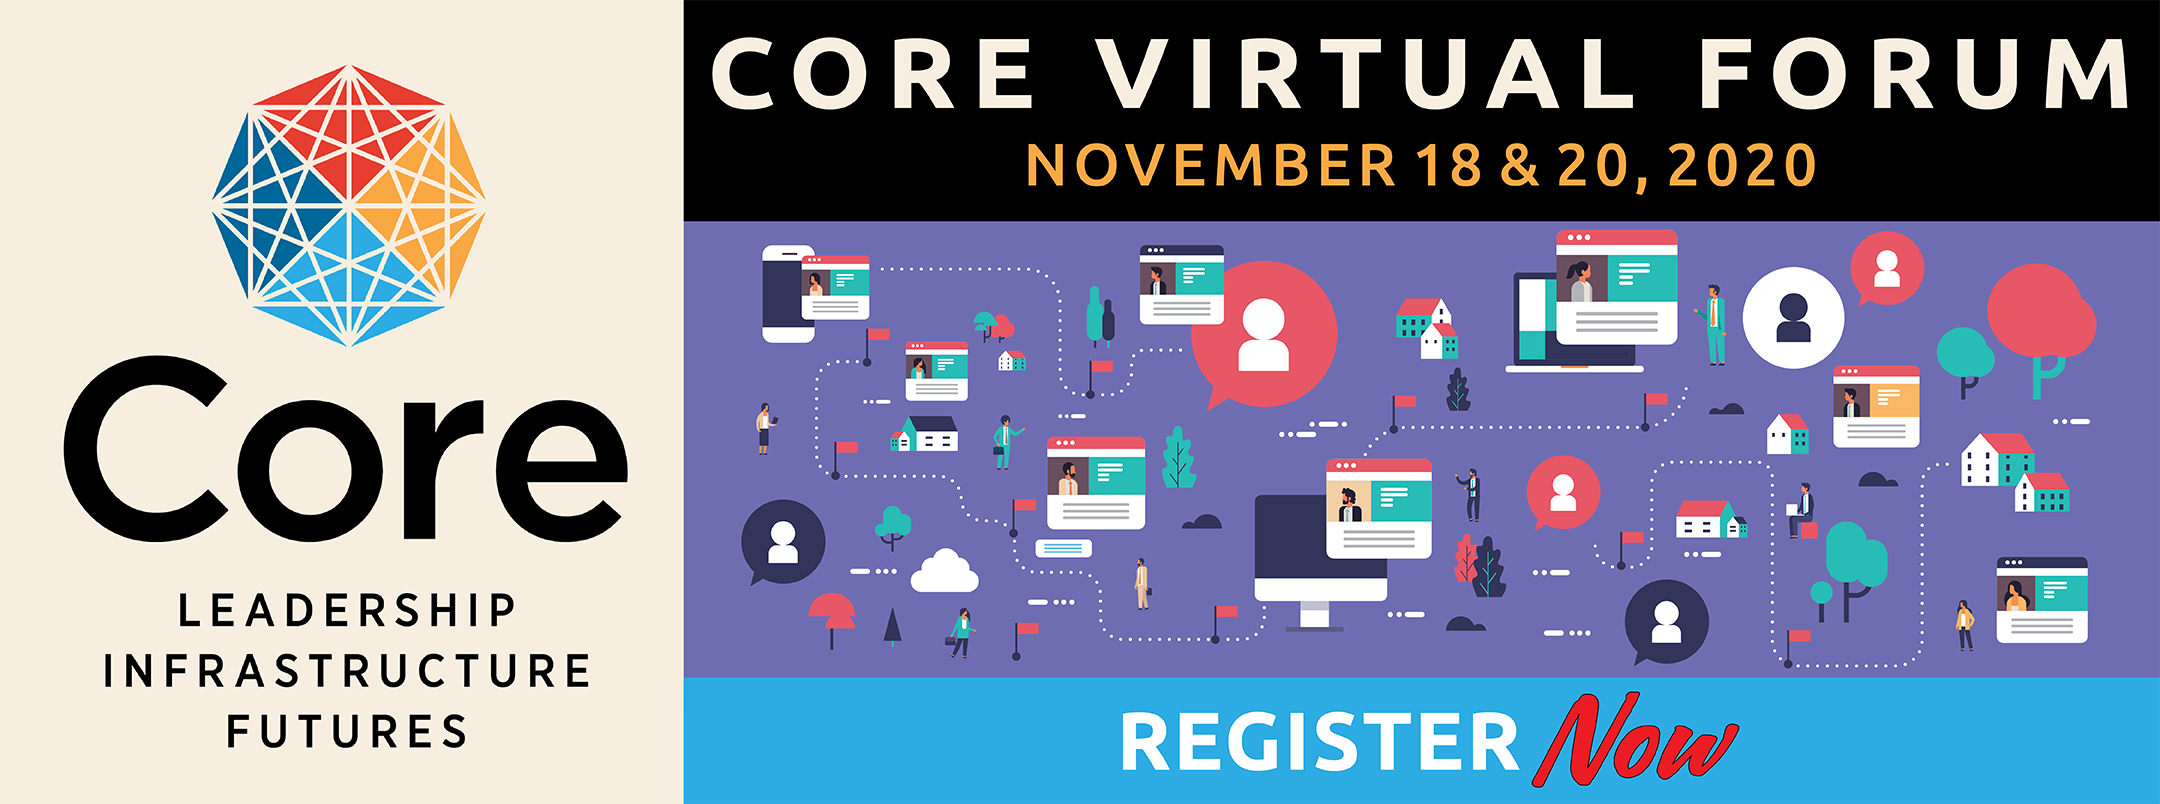 Last Chance to Register for Core Virtual Forum on November 17, 18, & 20